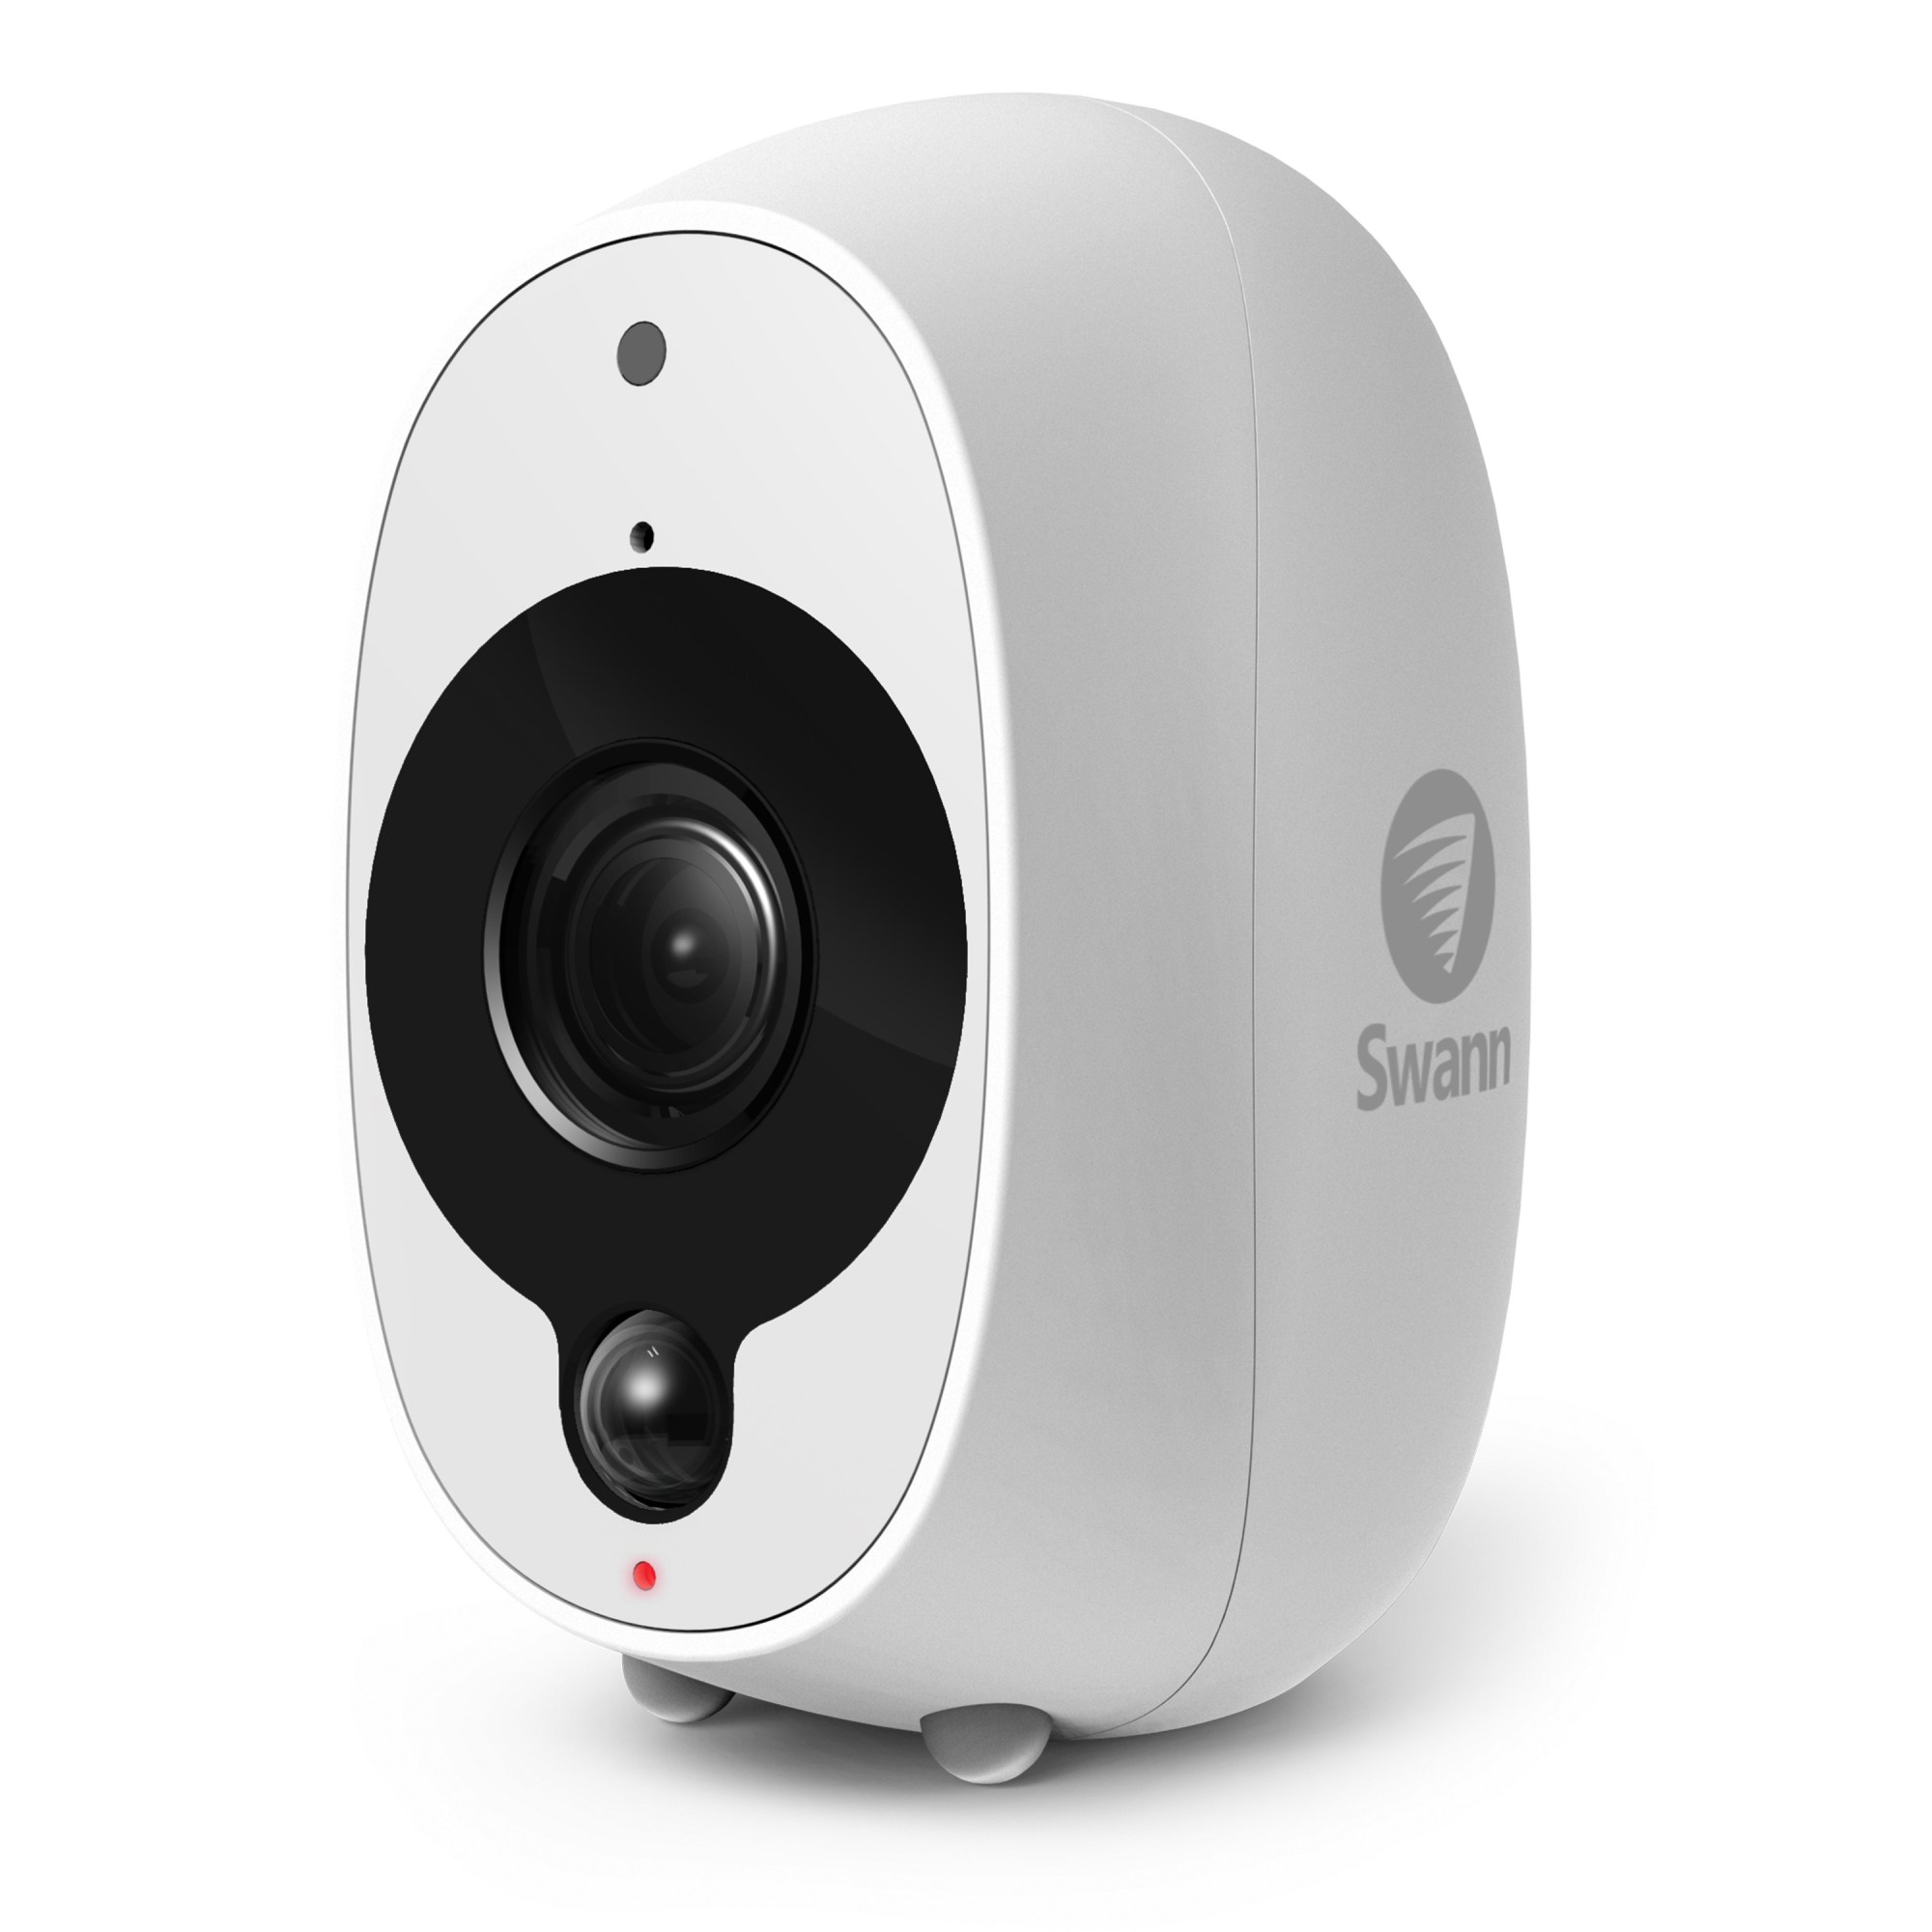 hight resolution of r swwhd intcam swann smart security camera 1080p full hd wireless security camera